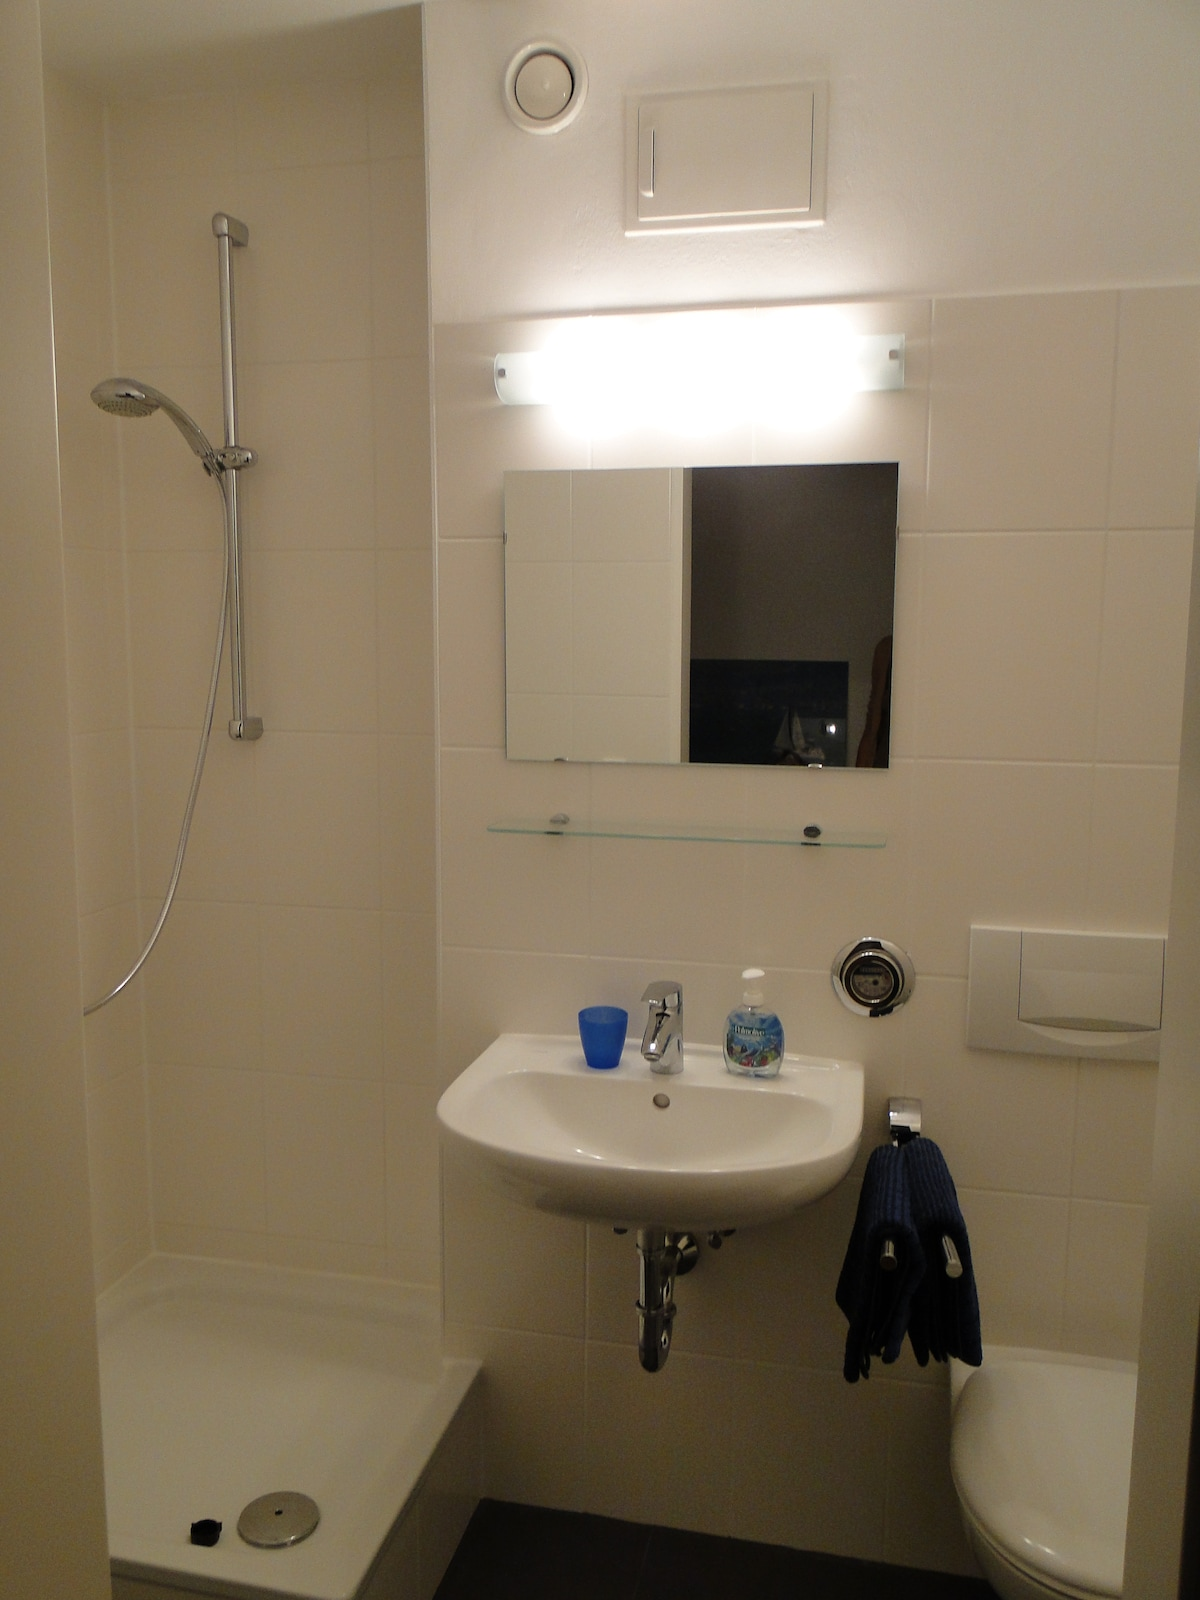 Your Private New Bathroom with High Glass Fronted Shower Cabin